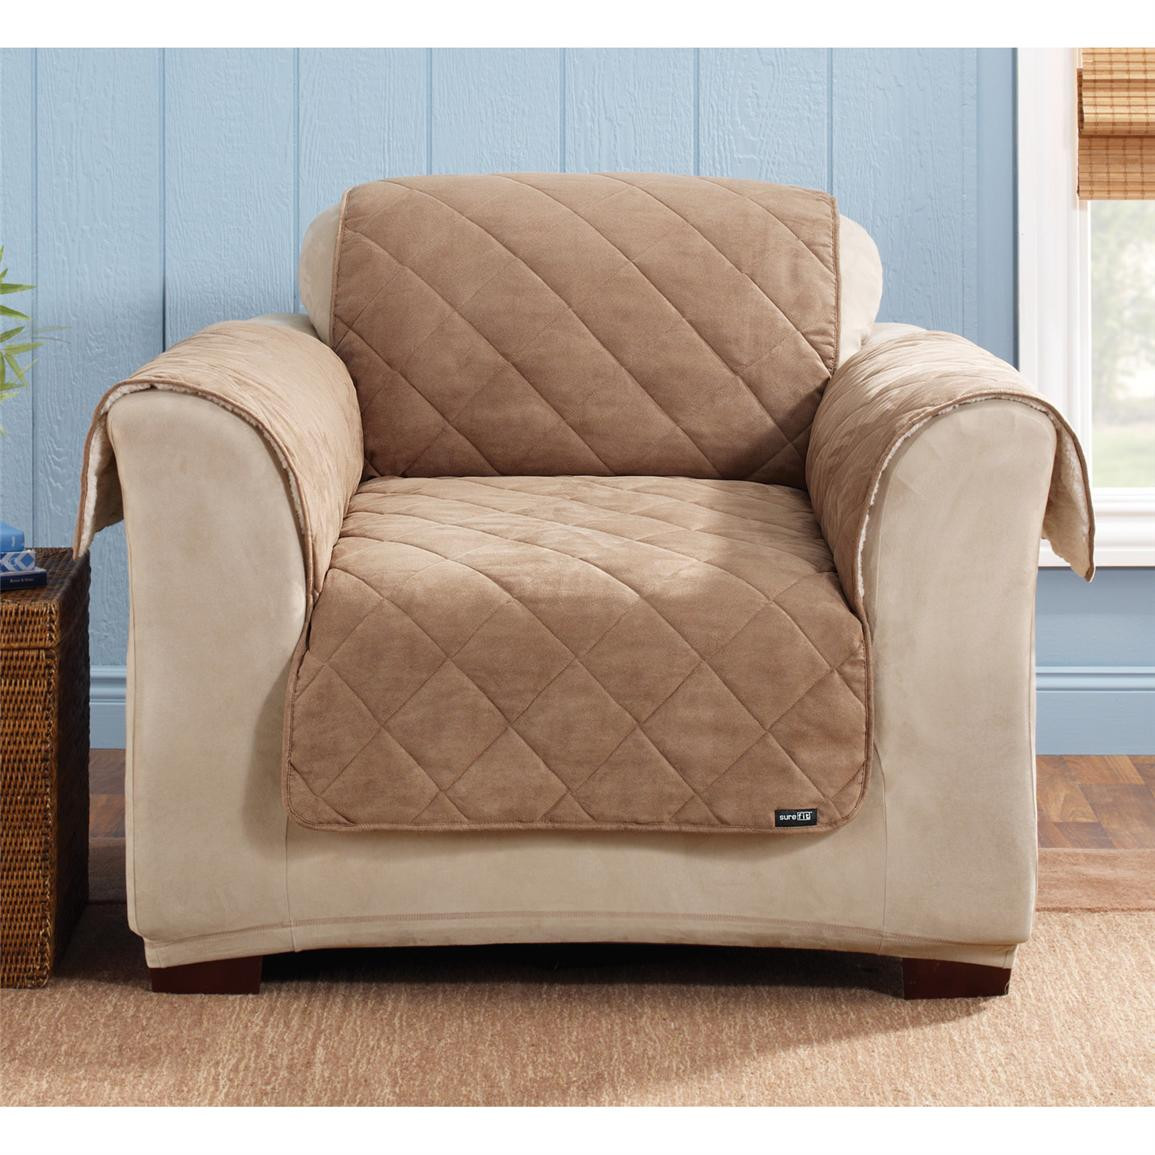 Best ideas about Sure Fit Chair Covers . Save or Pin Sure Fit Reversible Suede Sherpa Chair Pet Cover Now.